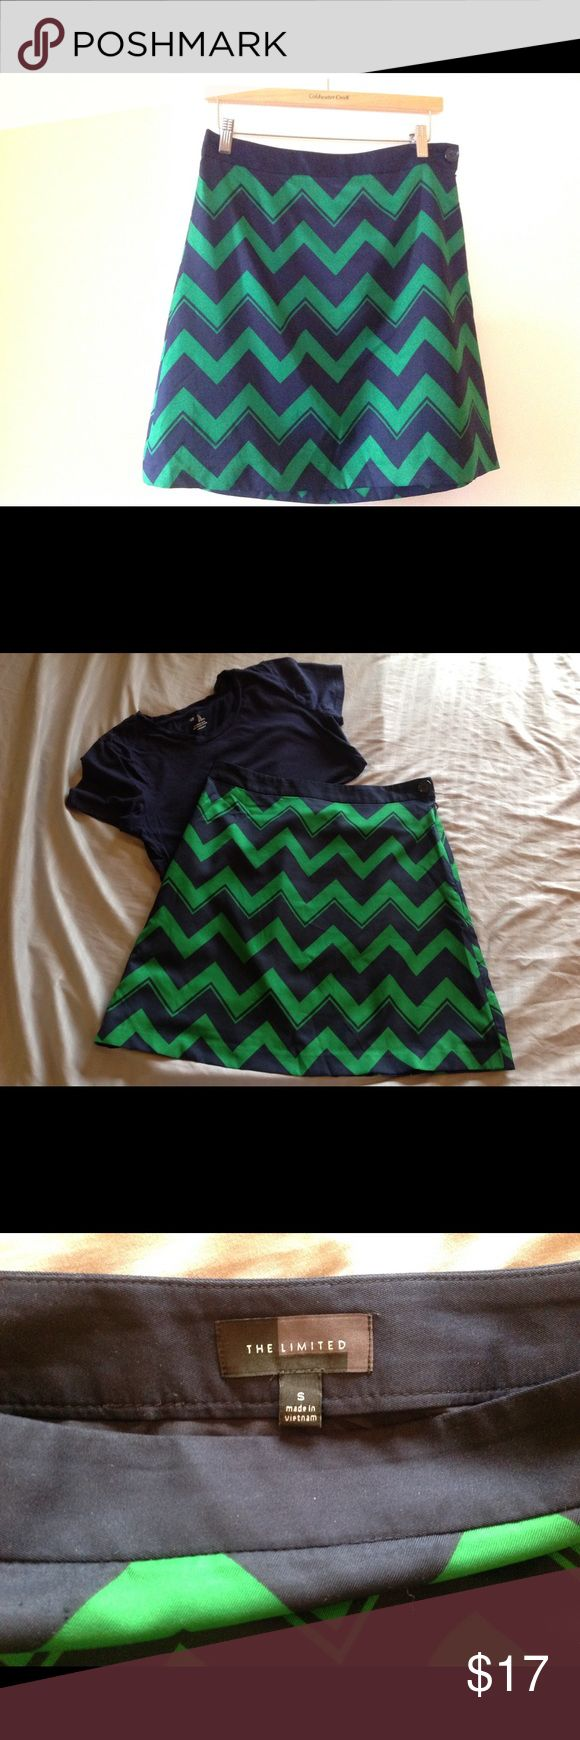 "The Limited Chevron skirt 100% polyester skirt with lining. Comfortable for summer wear with sandals and a tee. Perfect for the office or after hours. 19"" in length. The Limited Skirts"